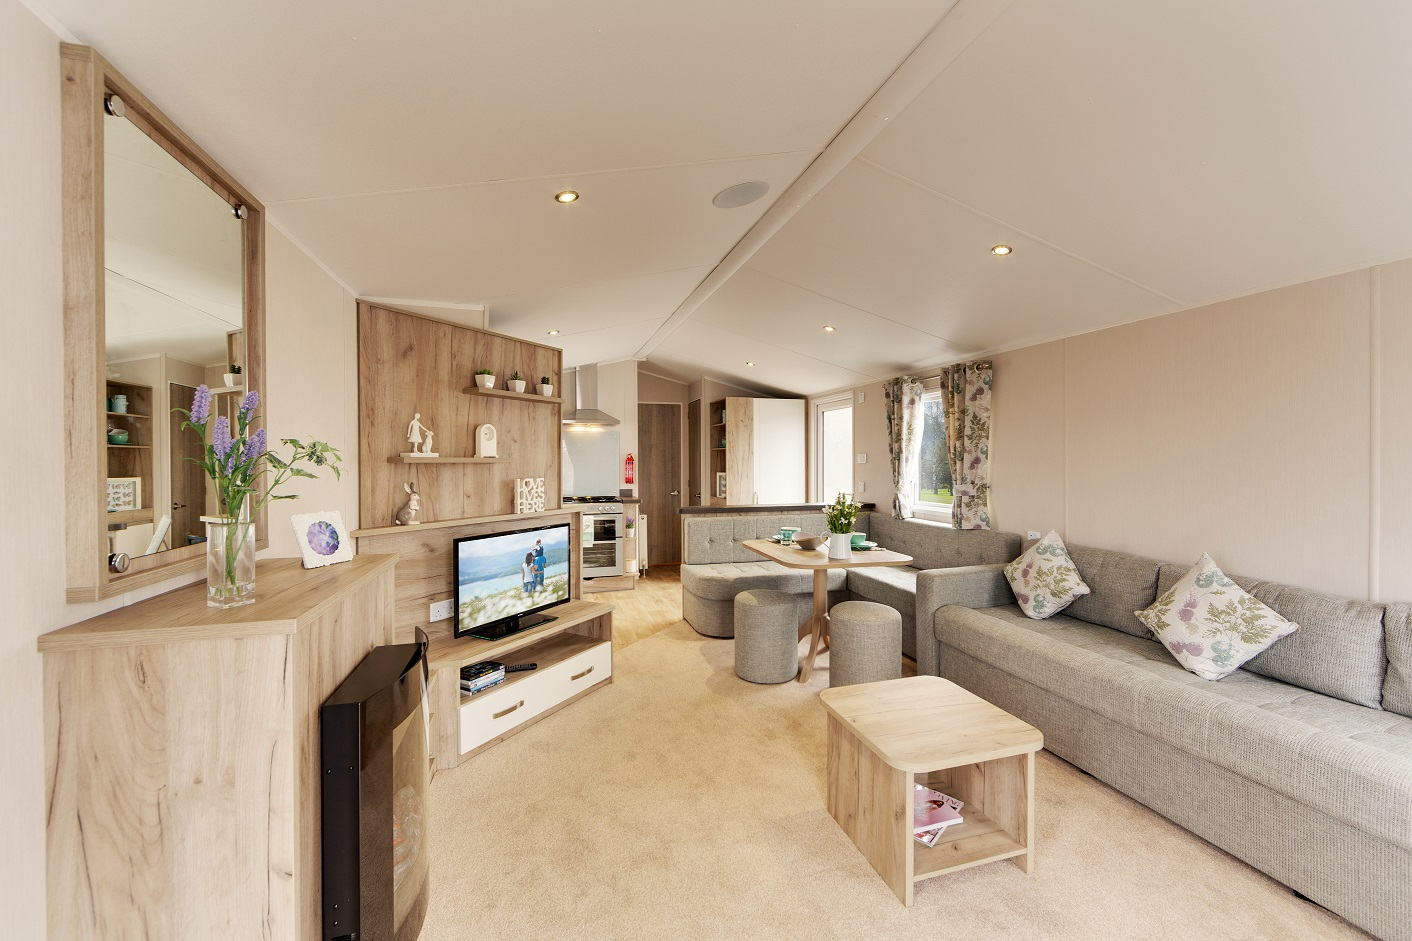 Willerby Skye - 3 Bedrooms: New Static Caravans and Holiday Homes for Sale, Clifton, Morpeth Large Image 2